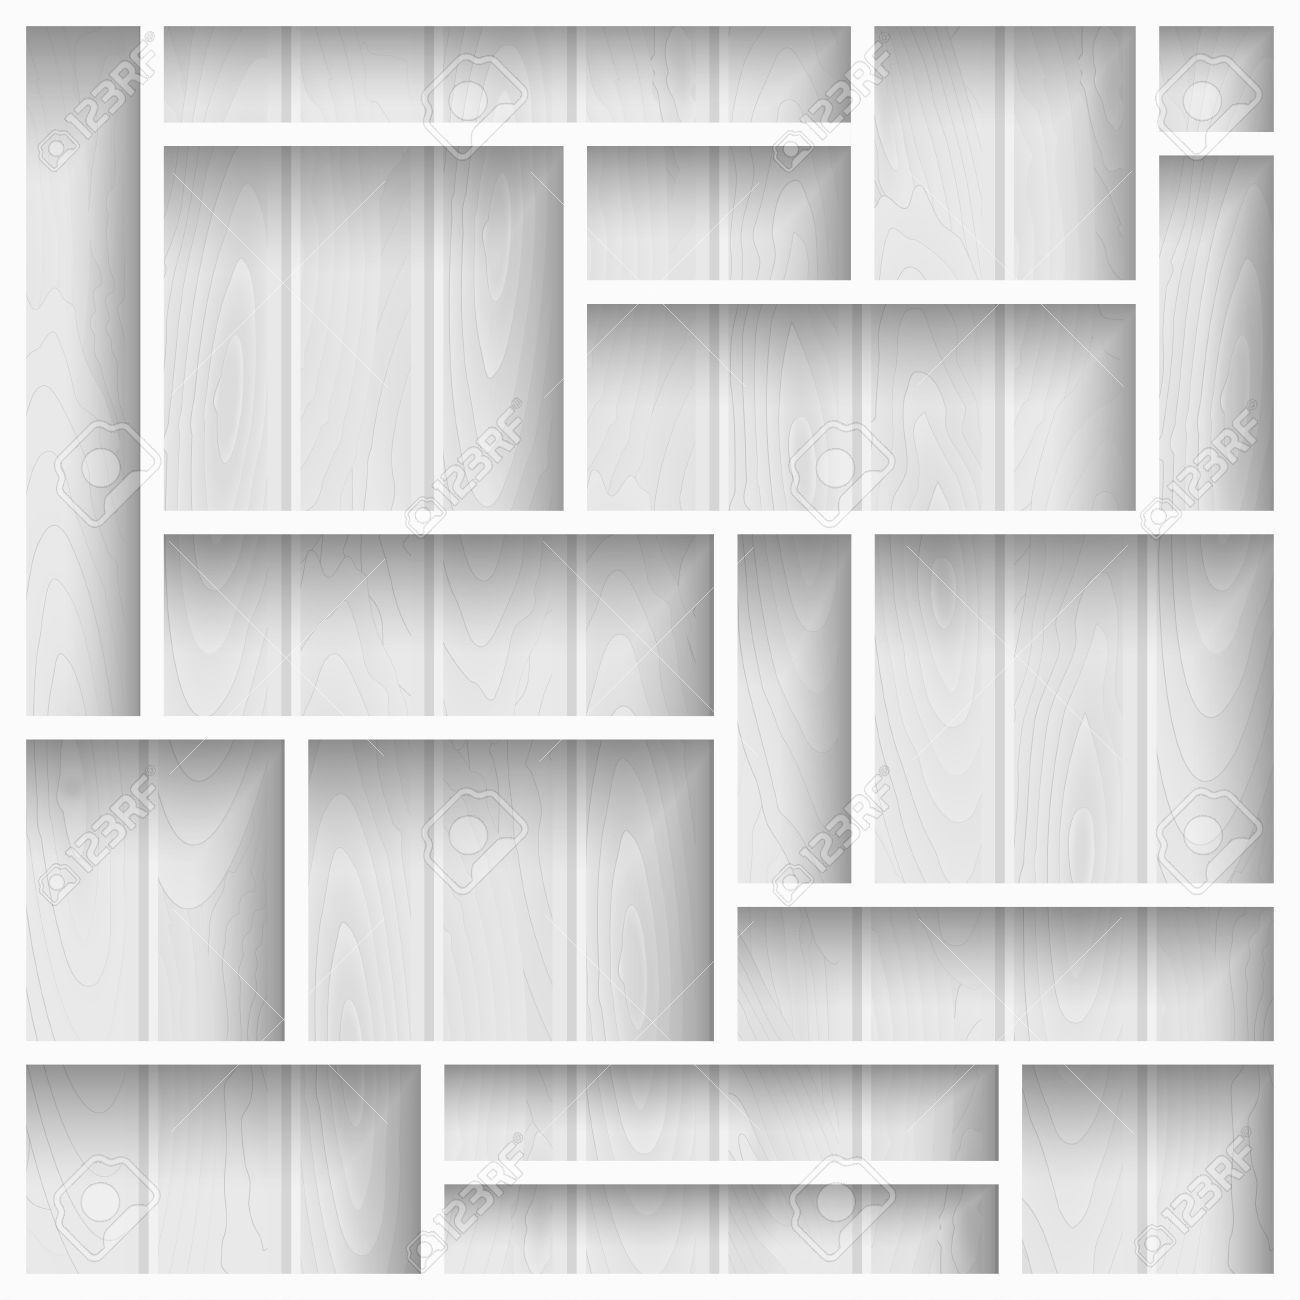 Interior wooden shelves free vector - Empty White Shelves On The Wooden Wall In Gray Colors Vector Background Stock Vector